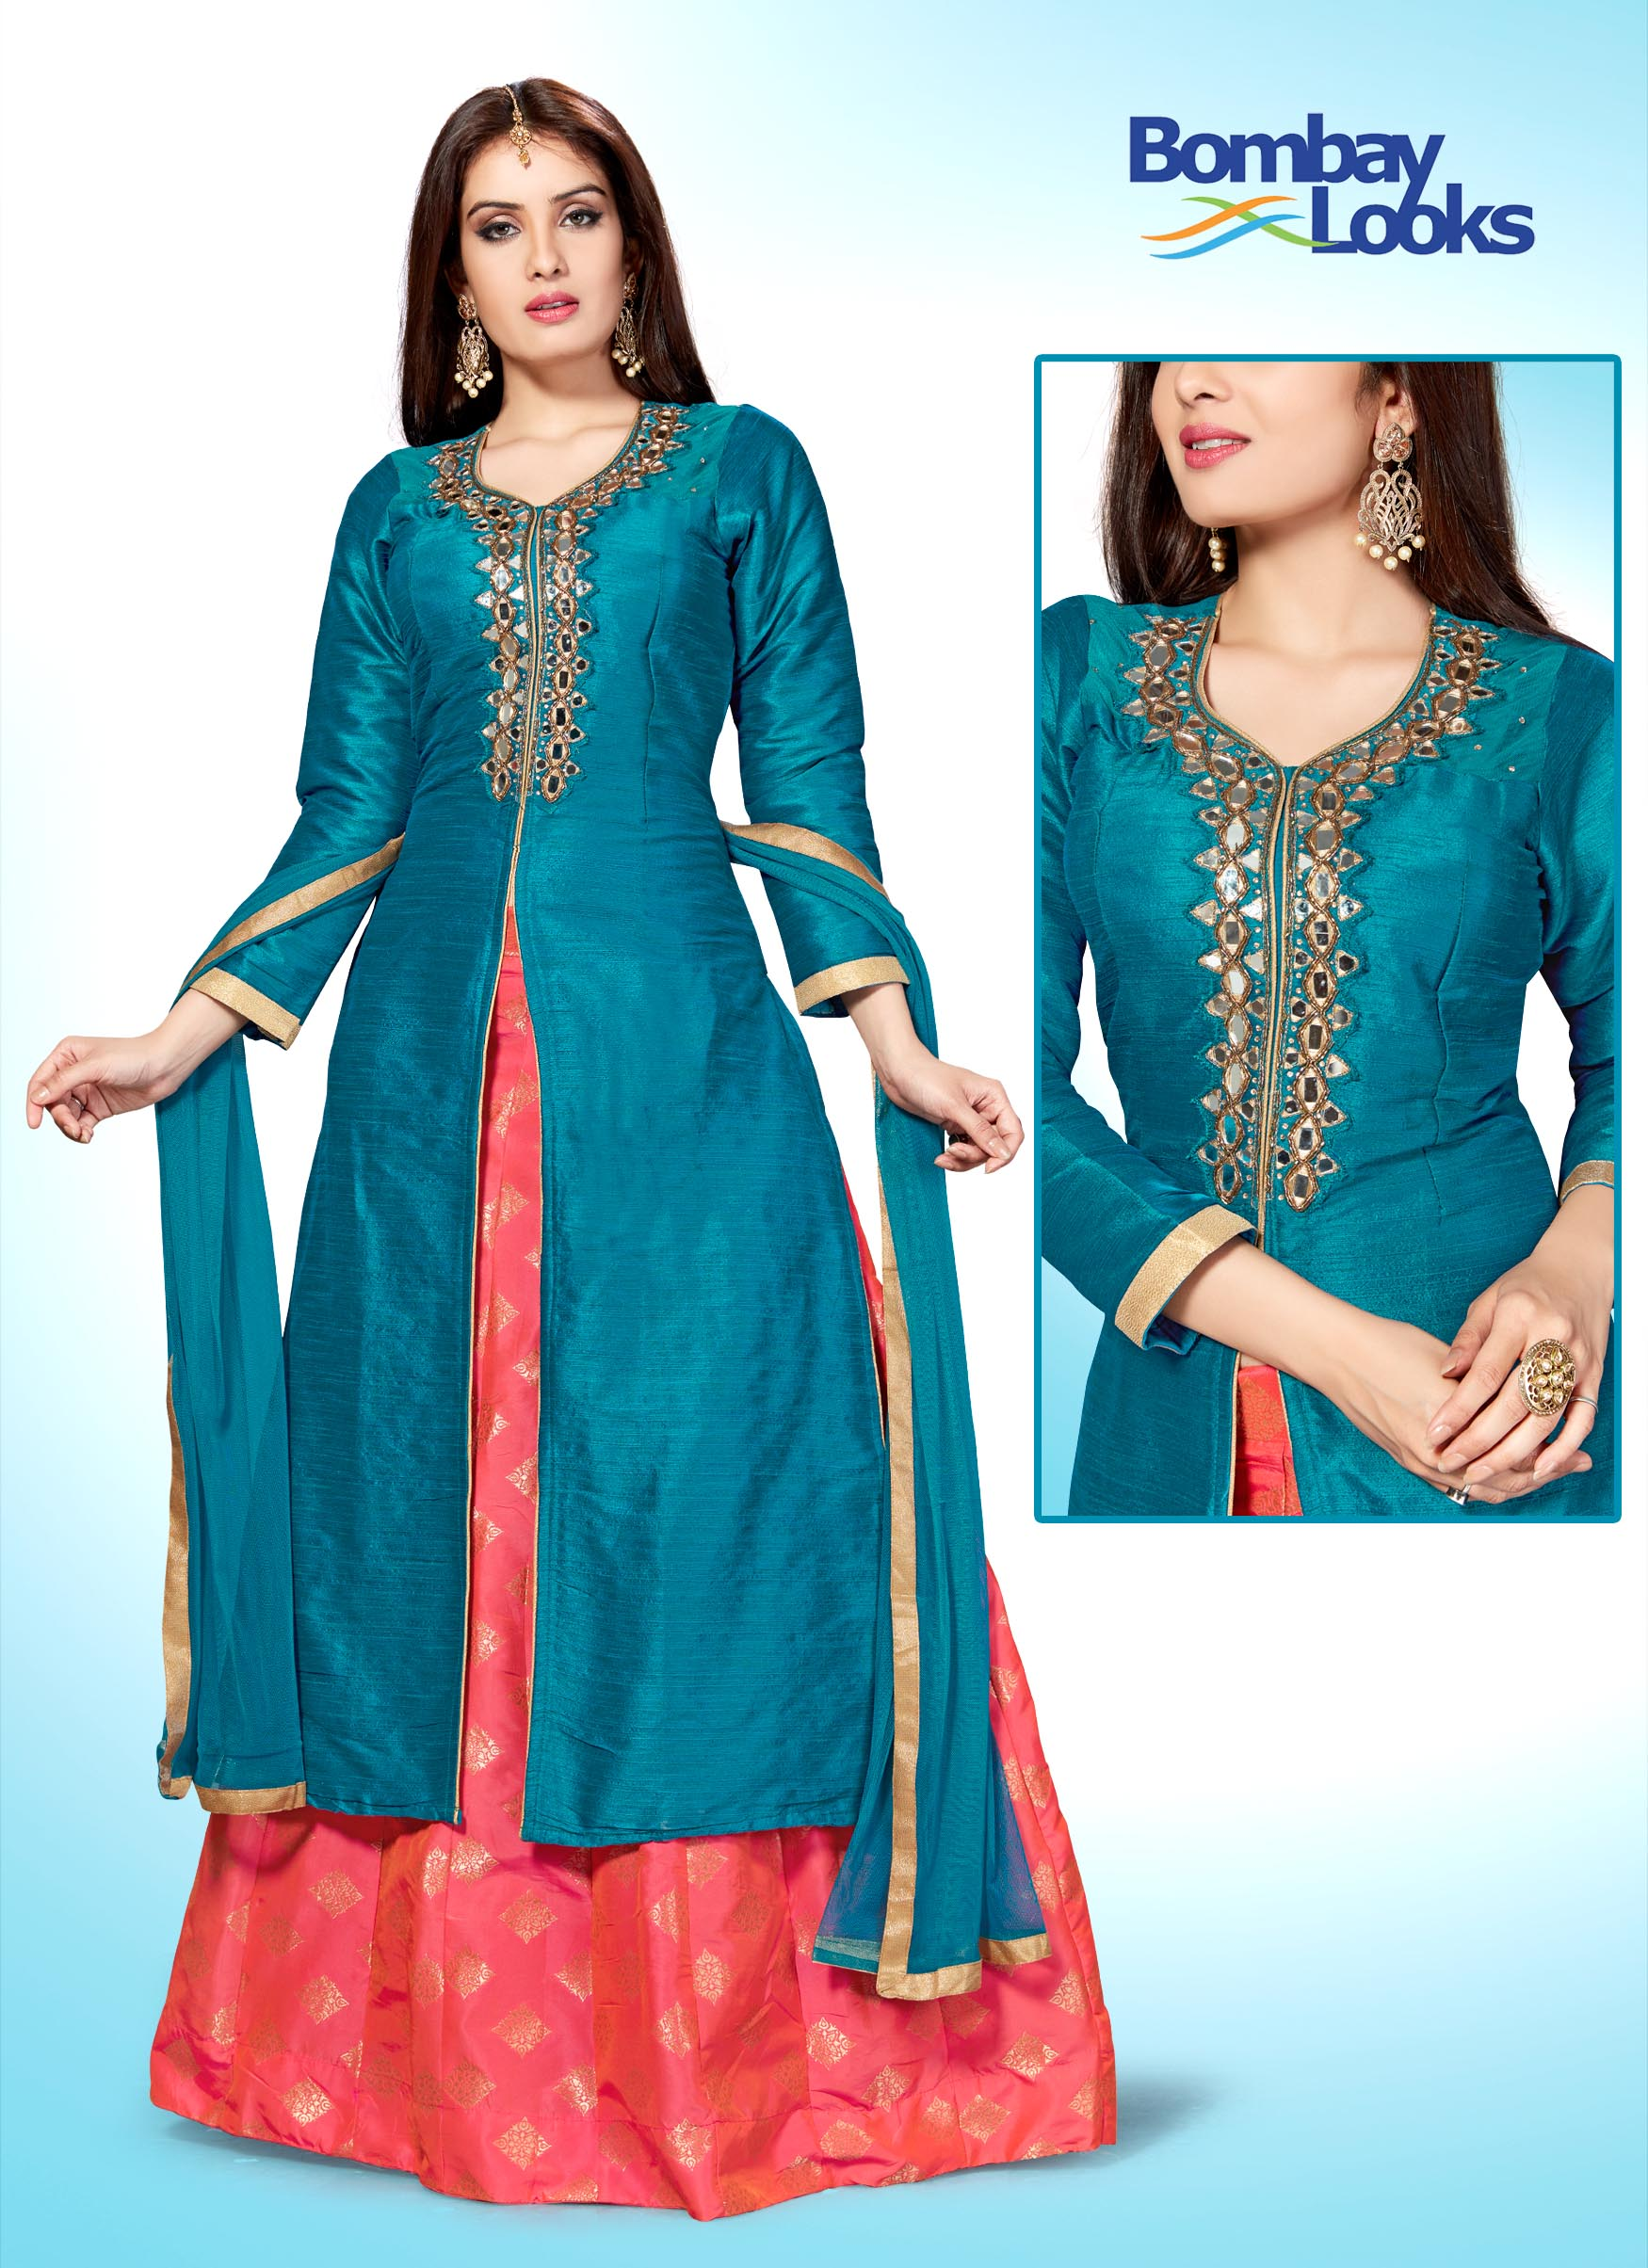 Royal blue suit set with brocade style skirt